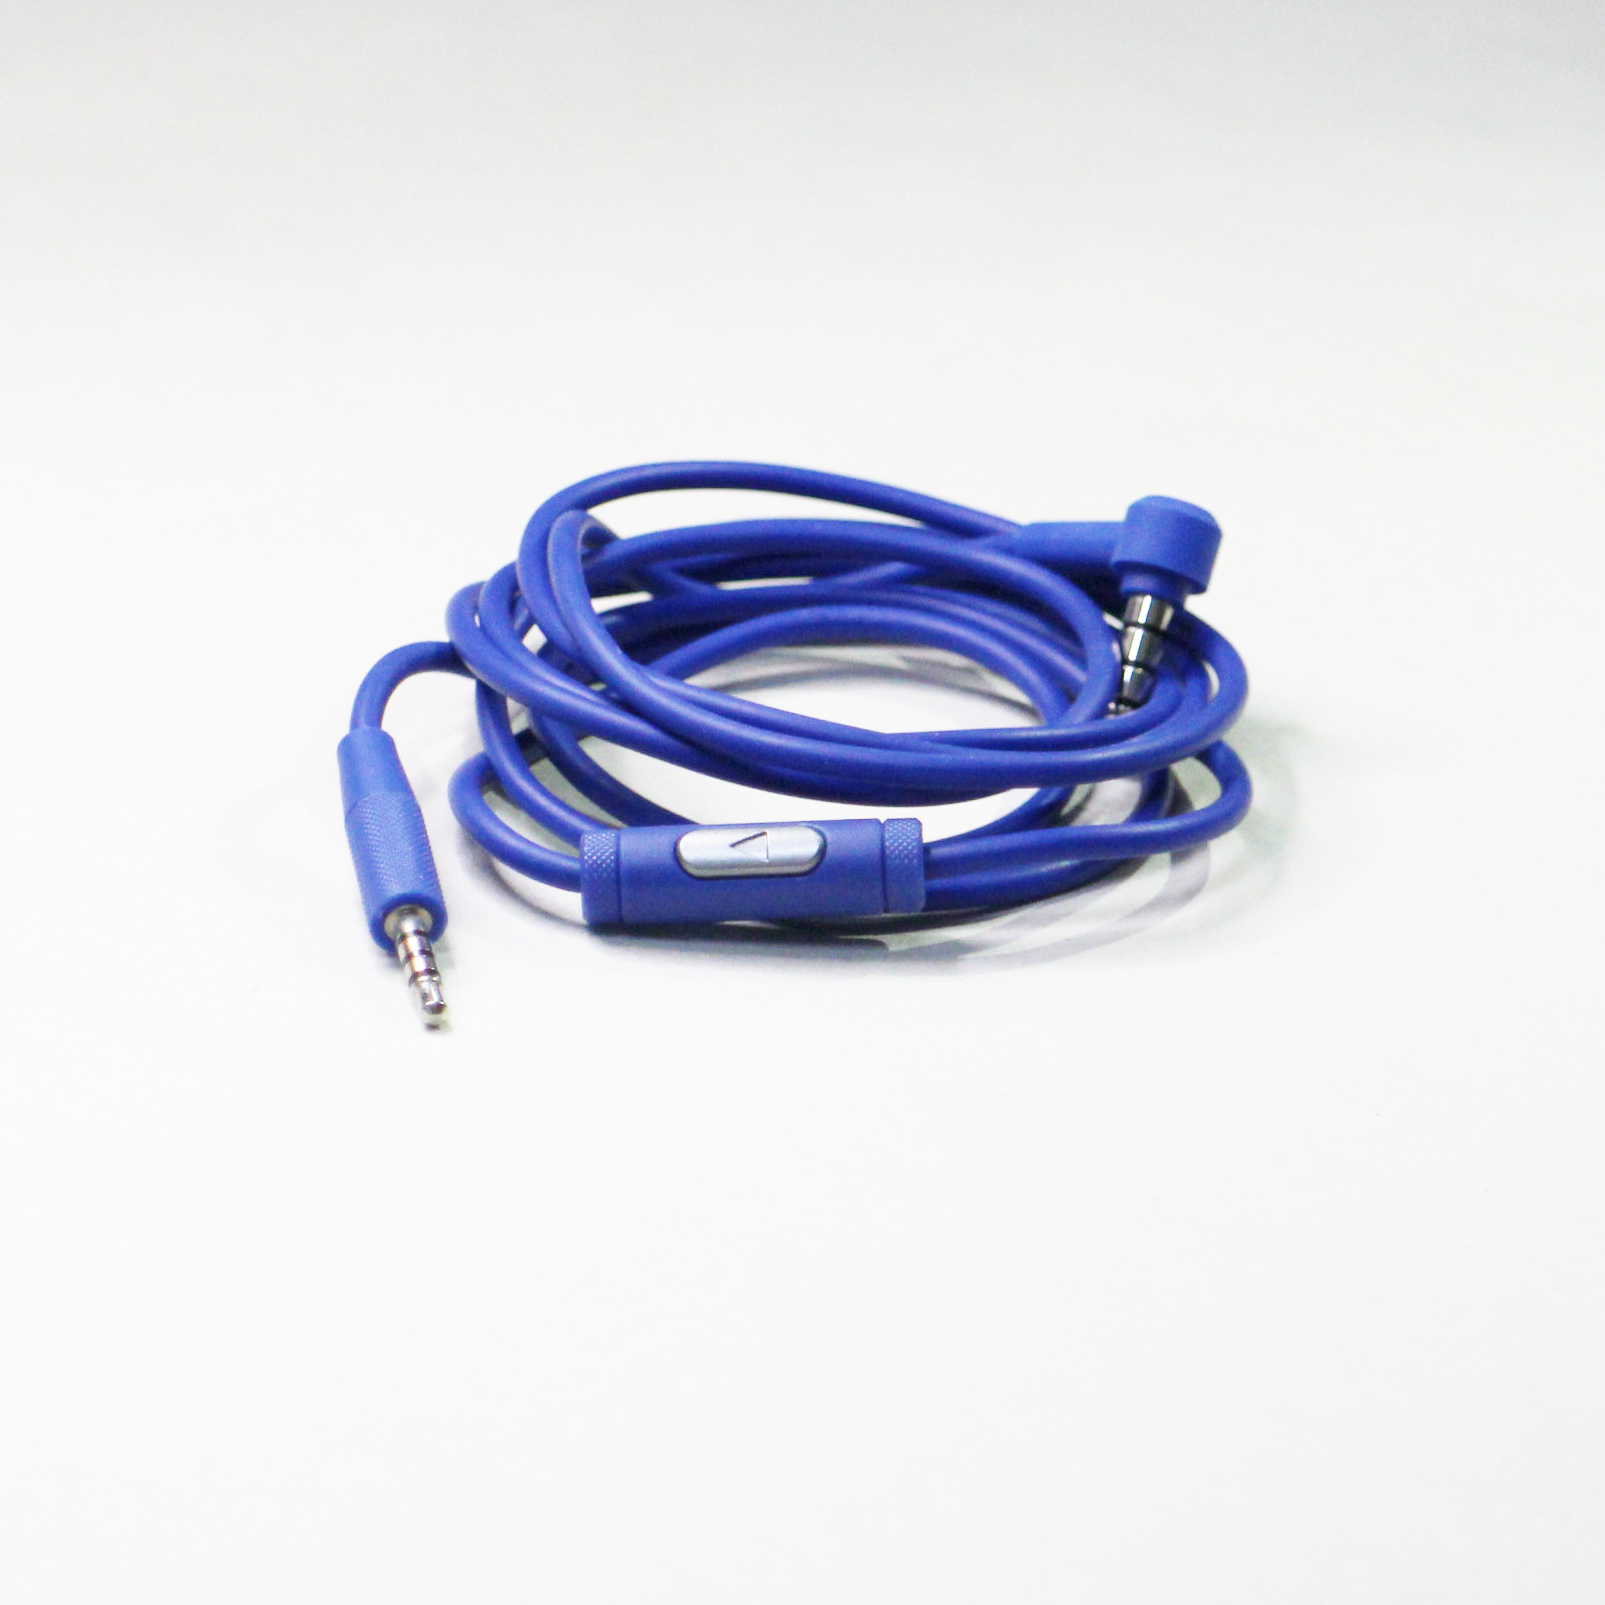 JBL E30 Cable with remote controller for smartphone - Blue - Hero